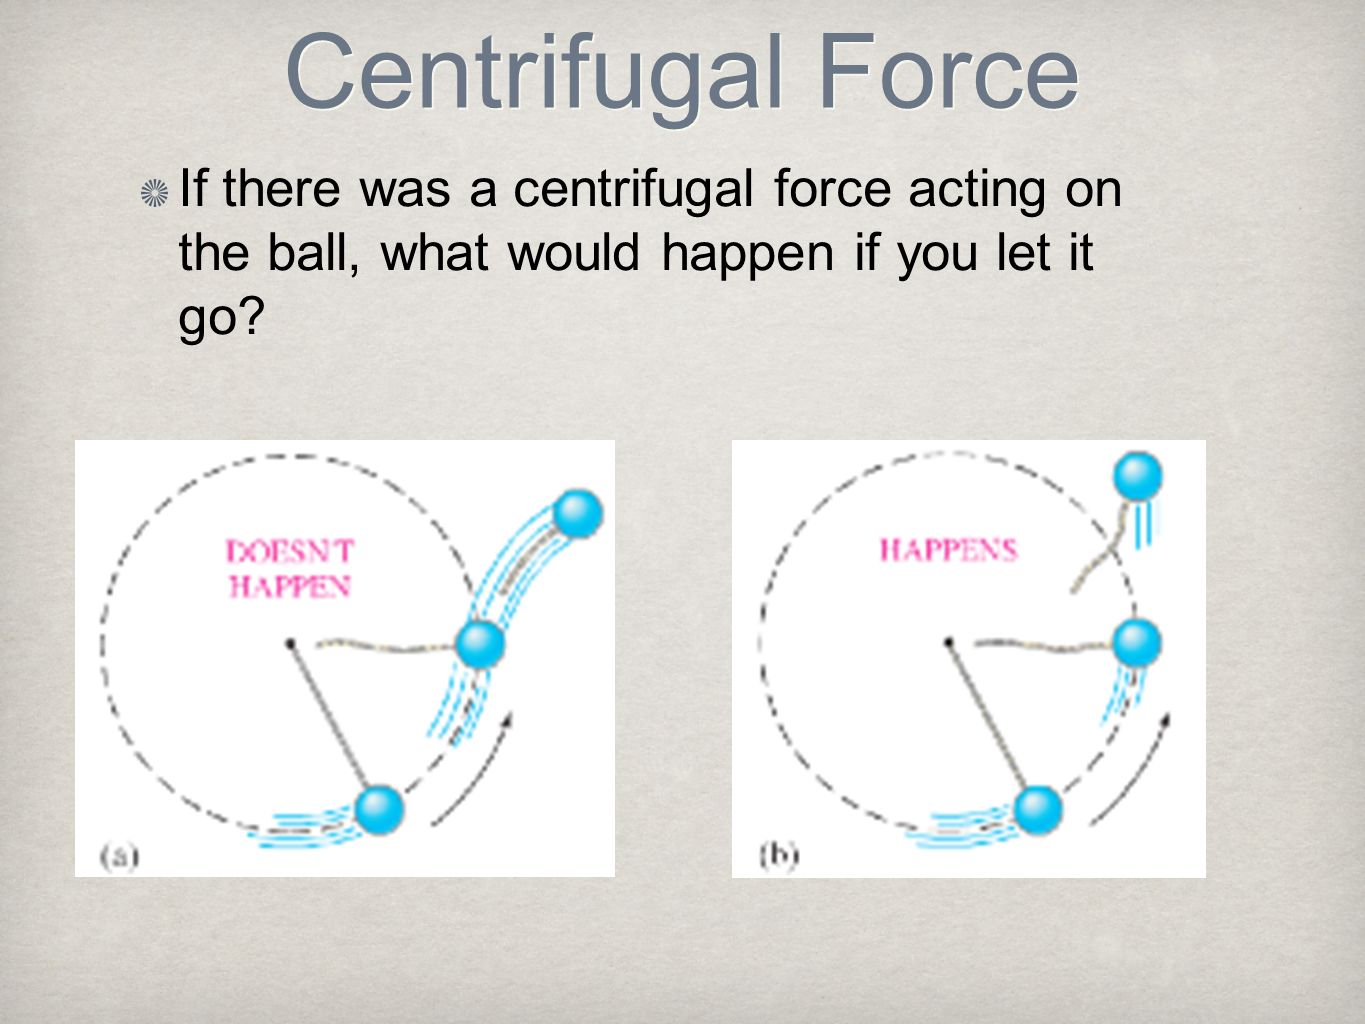 Centrifugal Force If there was a centrifugal force acting on the ball, what would happen if you let it go